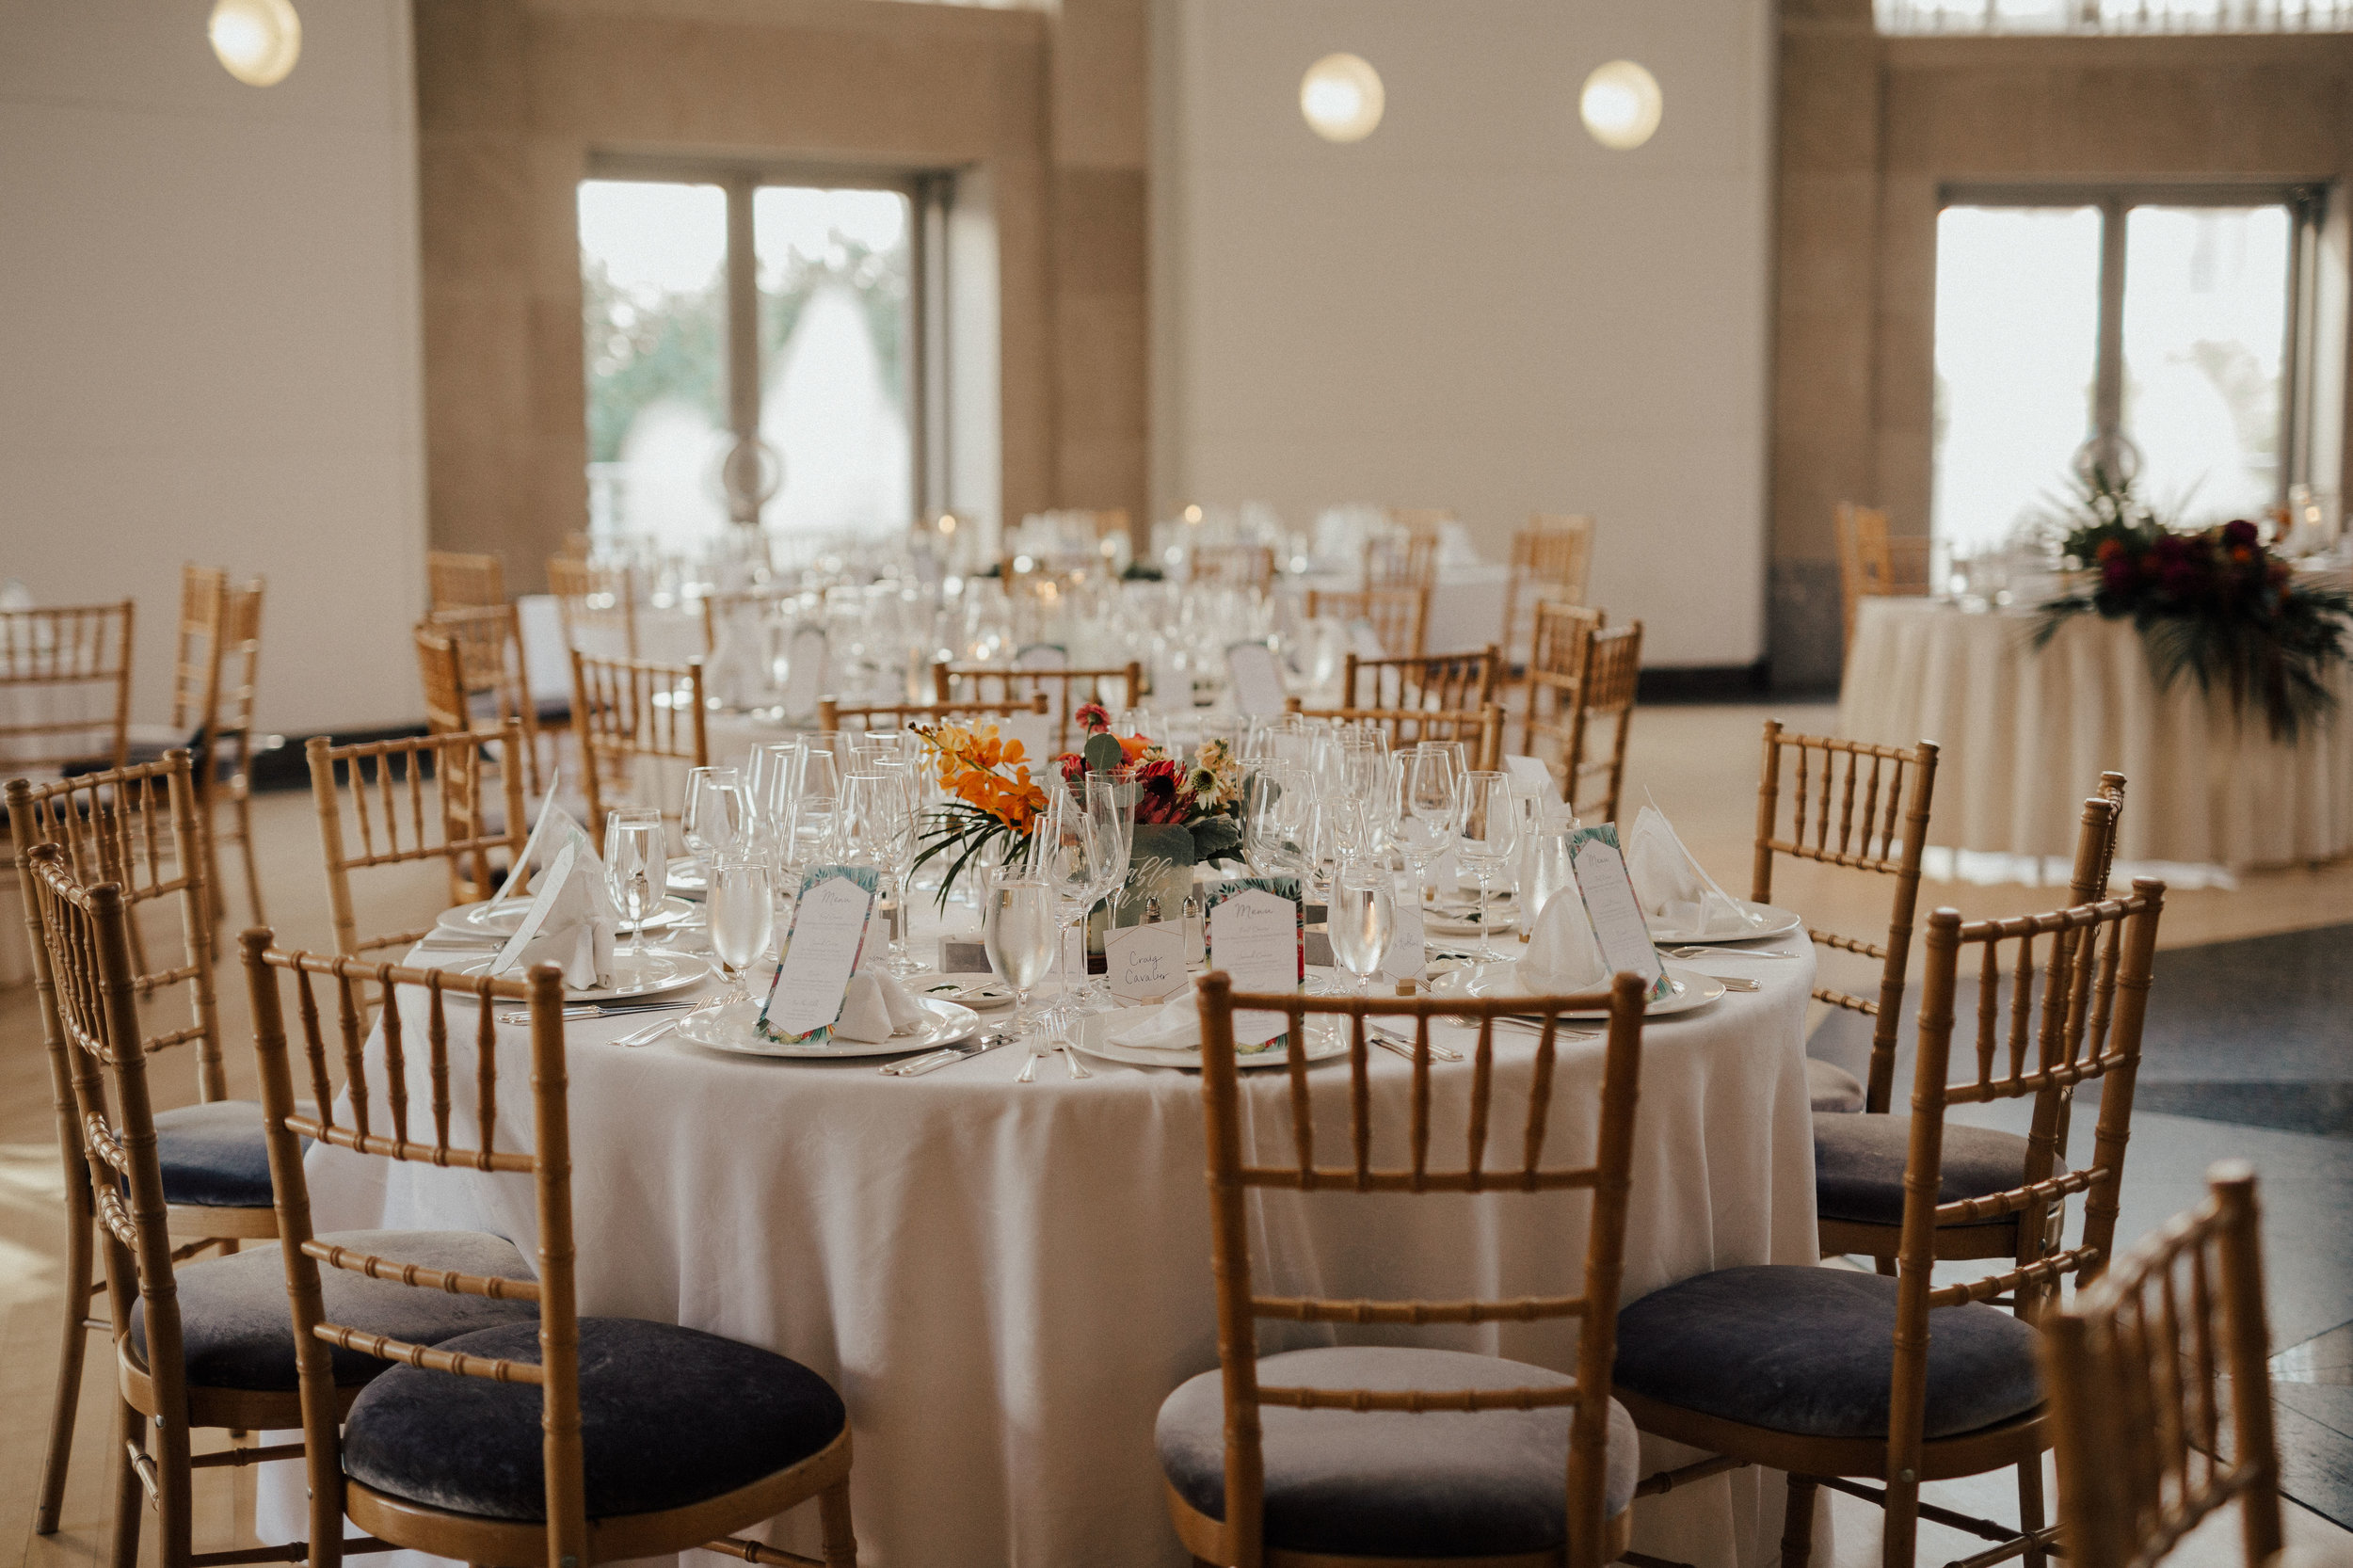 The Ronald Regan Building  - If you want a D.C style wedding, this venue is for you! The reception hall is filled with natural light and the outdoor courtyard makes the perfect backdrop for bridal portraits.